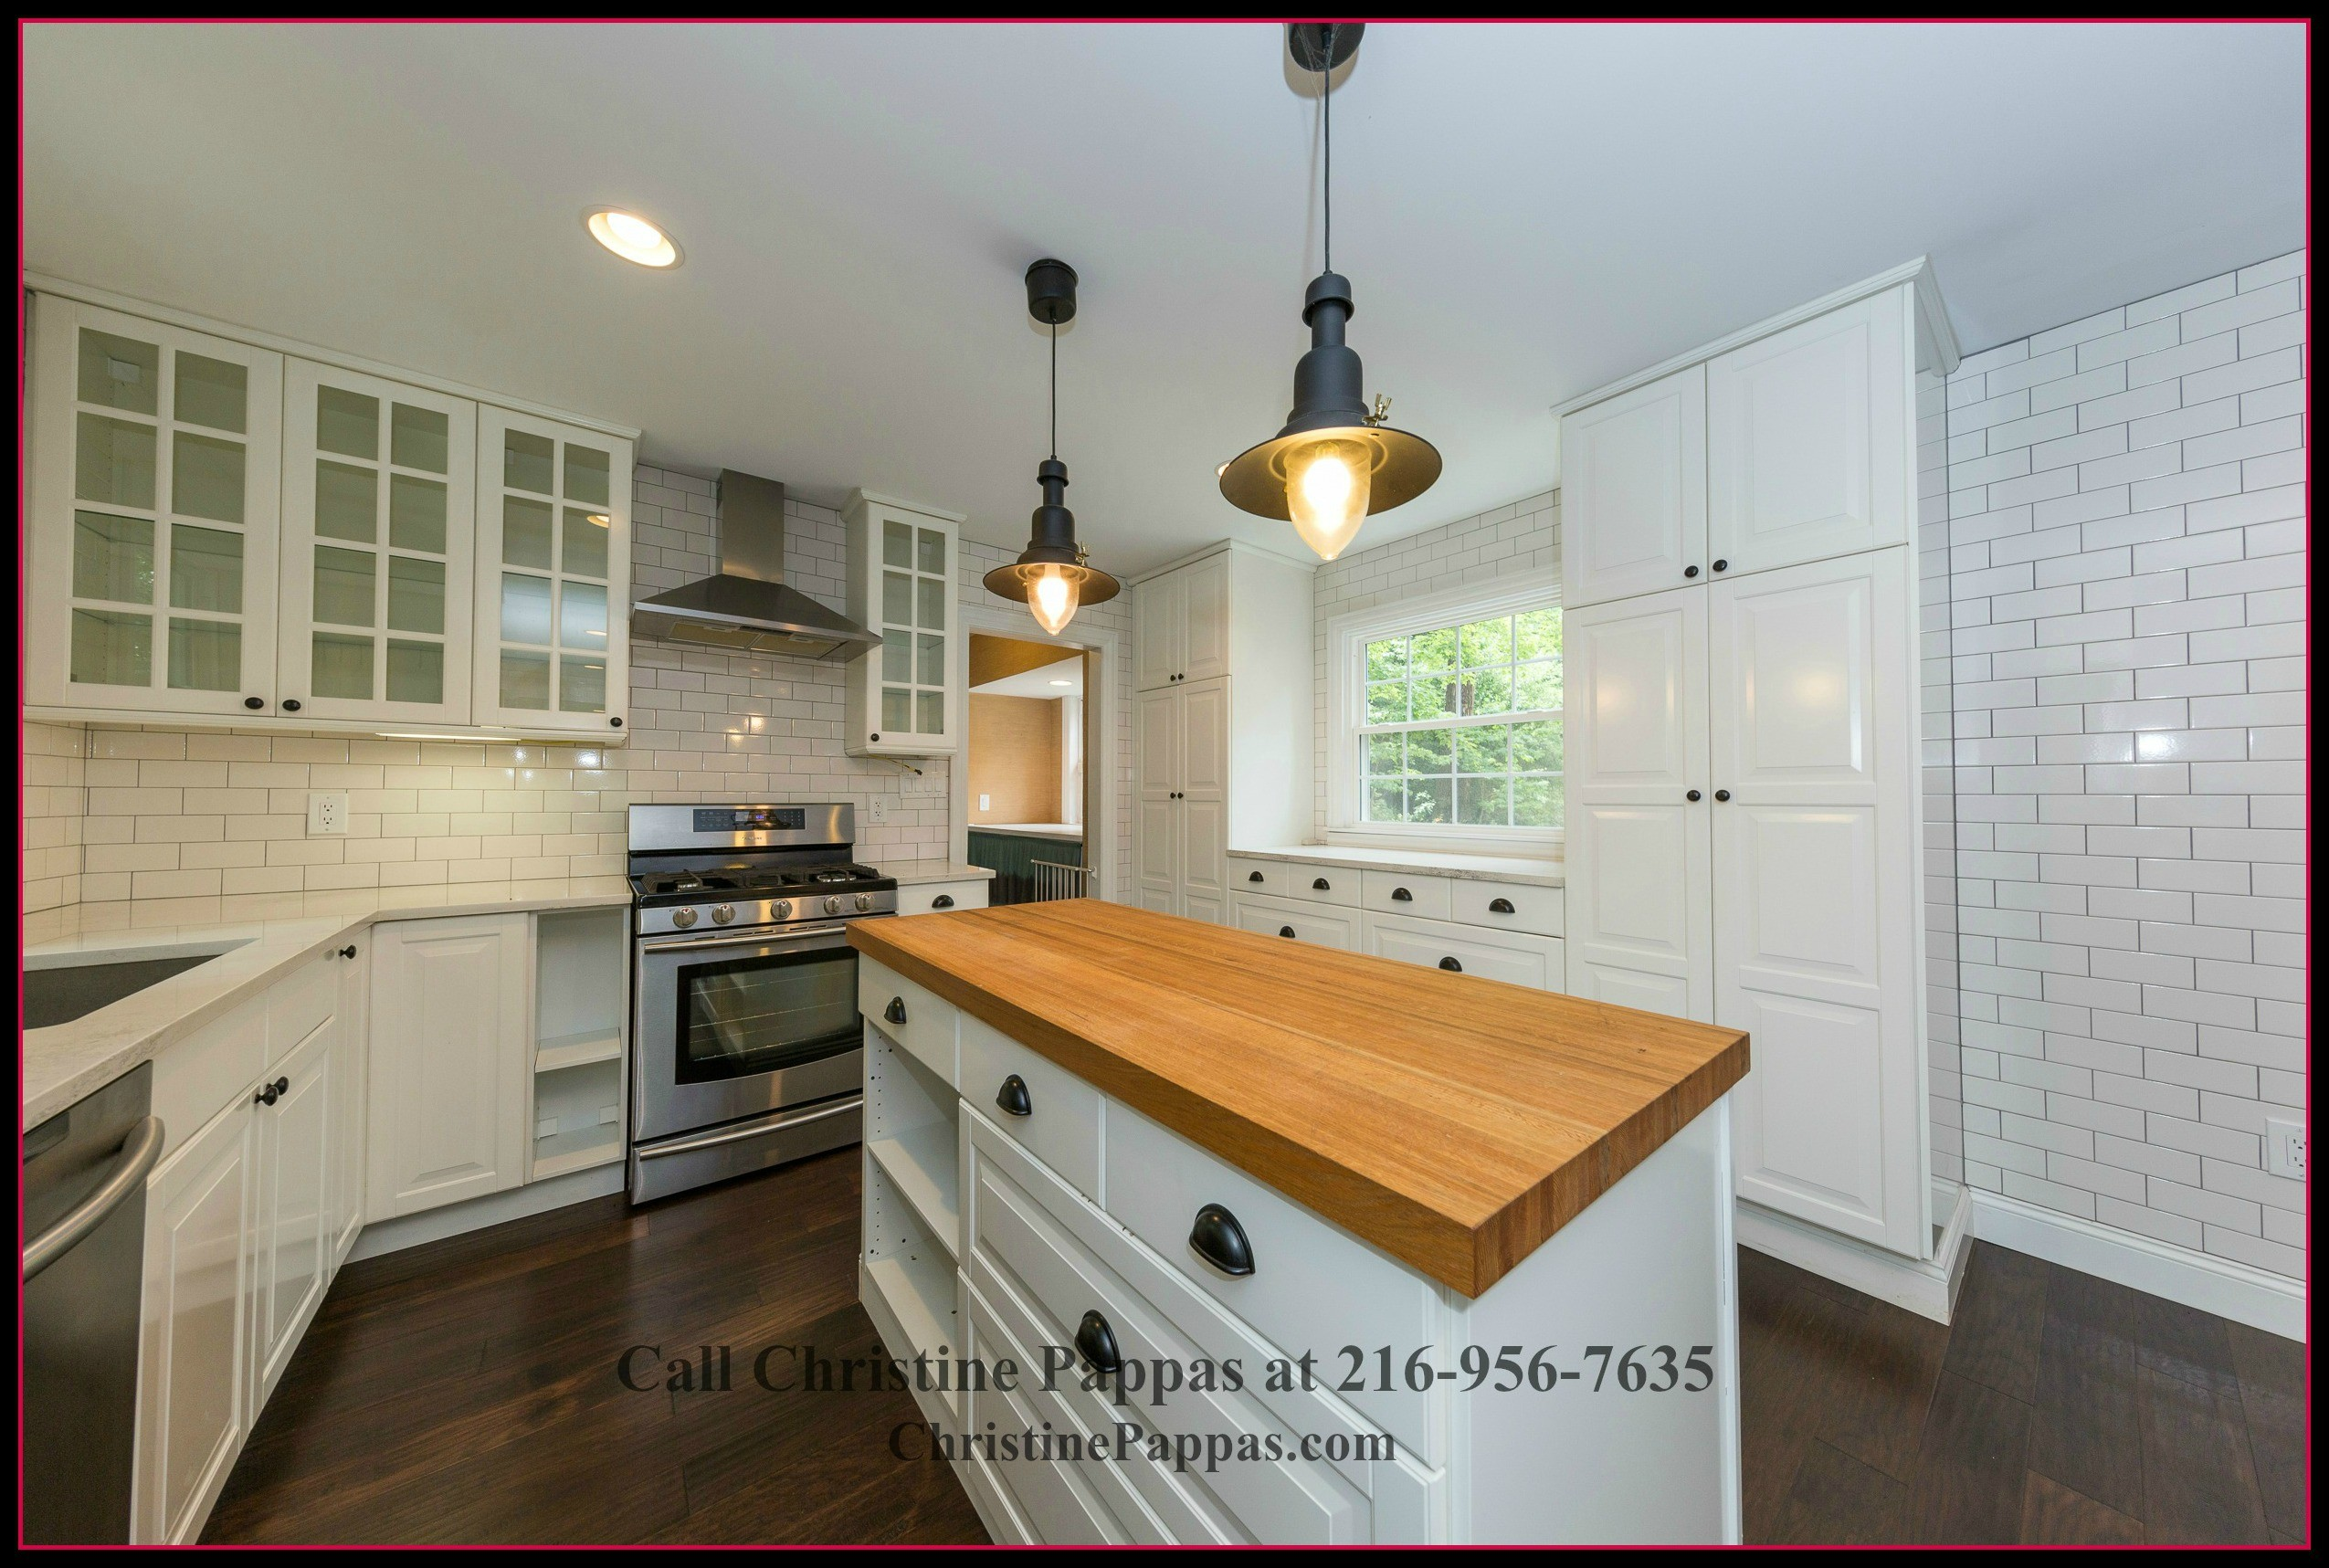 The gourmet kitchen in this strikingly beautiful home for sale in Gates Mills OH features center island and built in cabinets that add up to the elegance of the interiors.